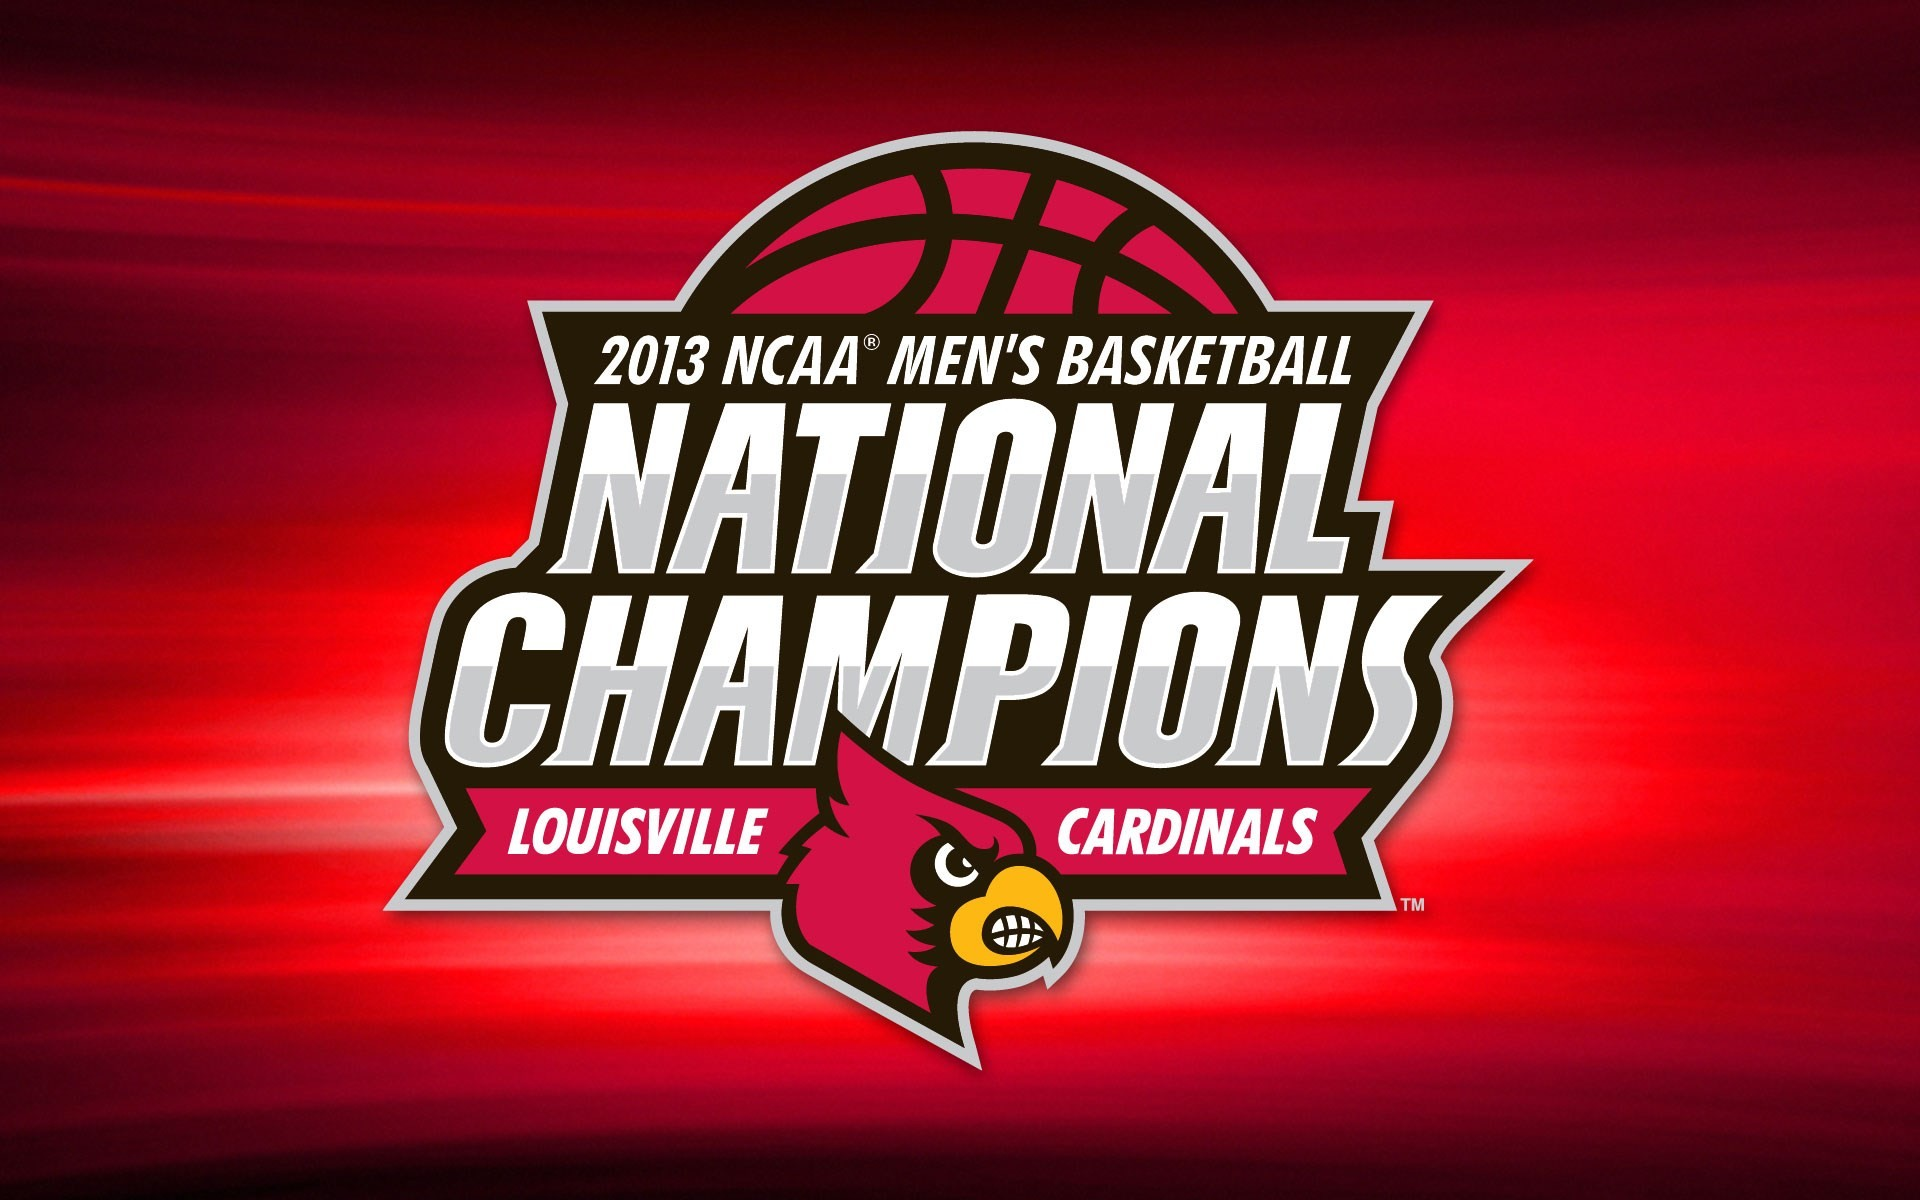 1920x1200 louisville cardinals national champions wallpaper